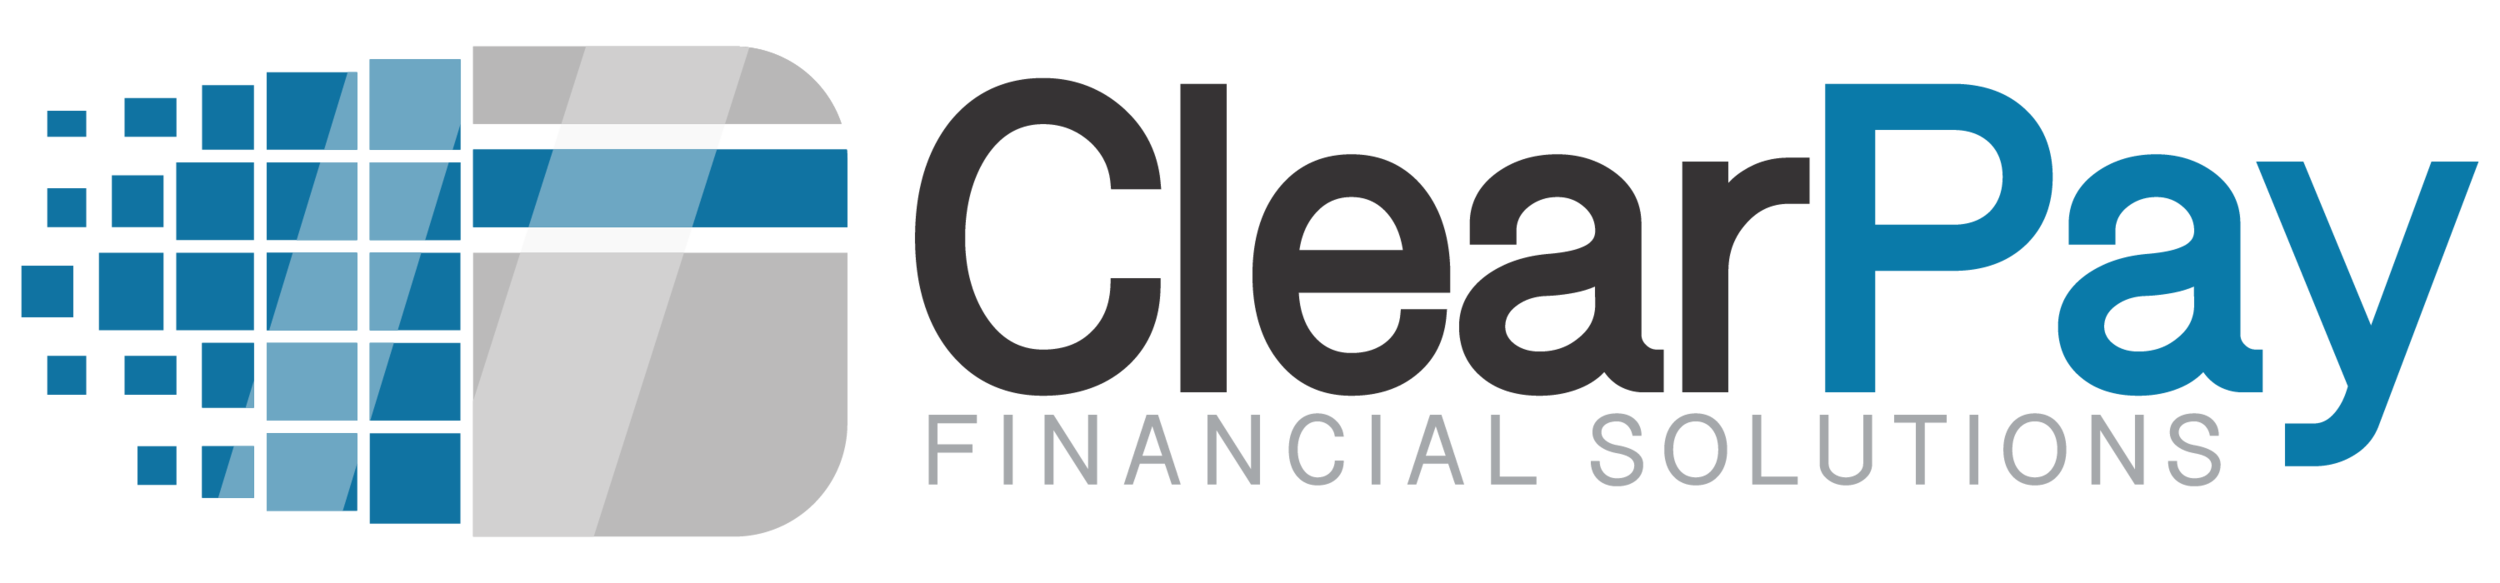 Clear Pay Logo-01.png